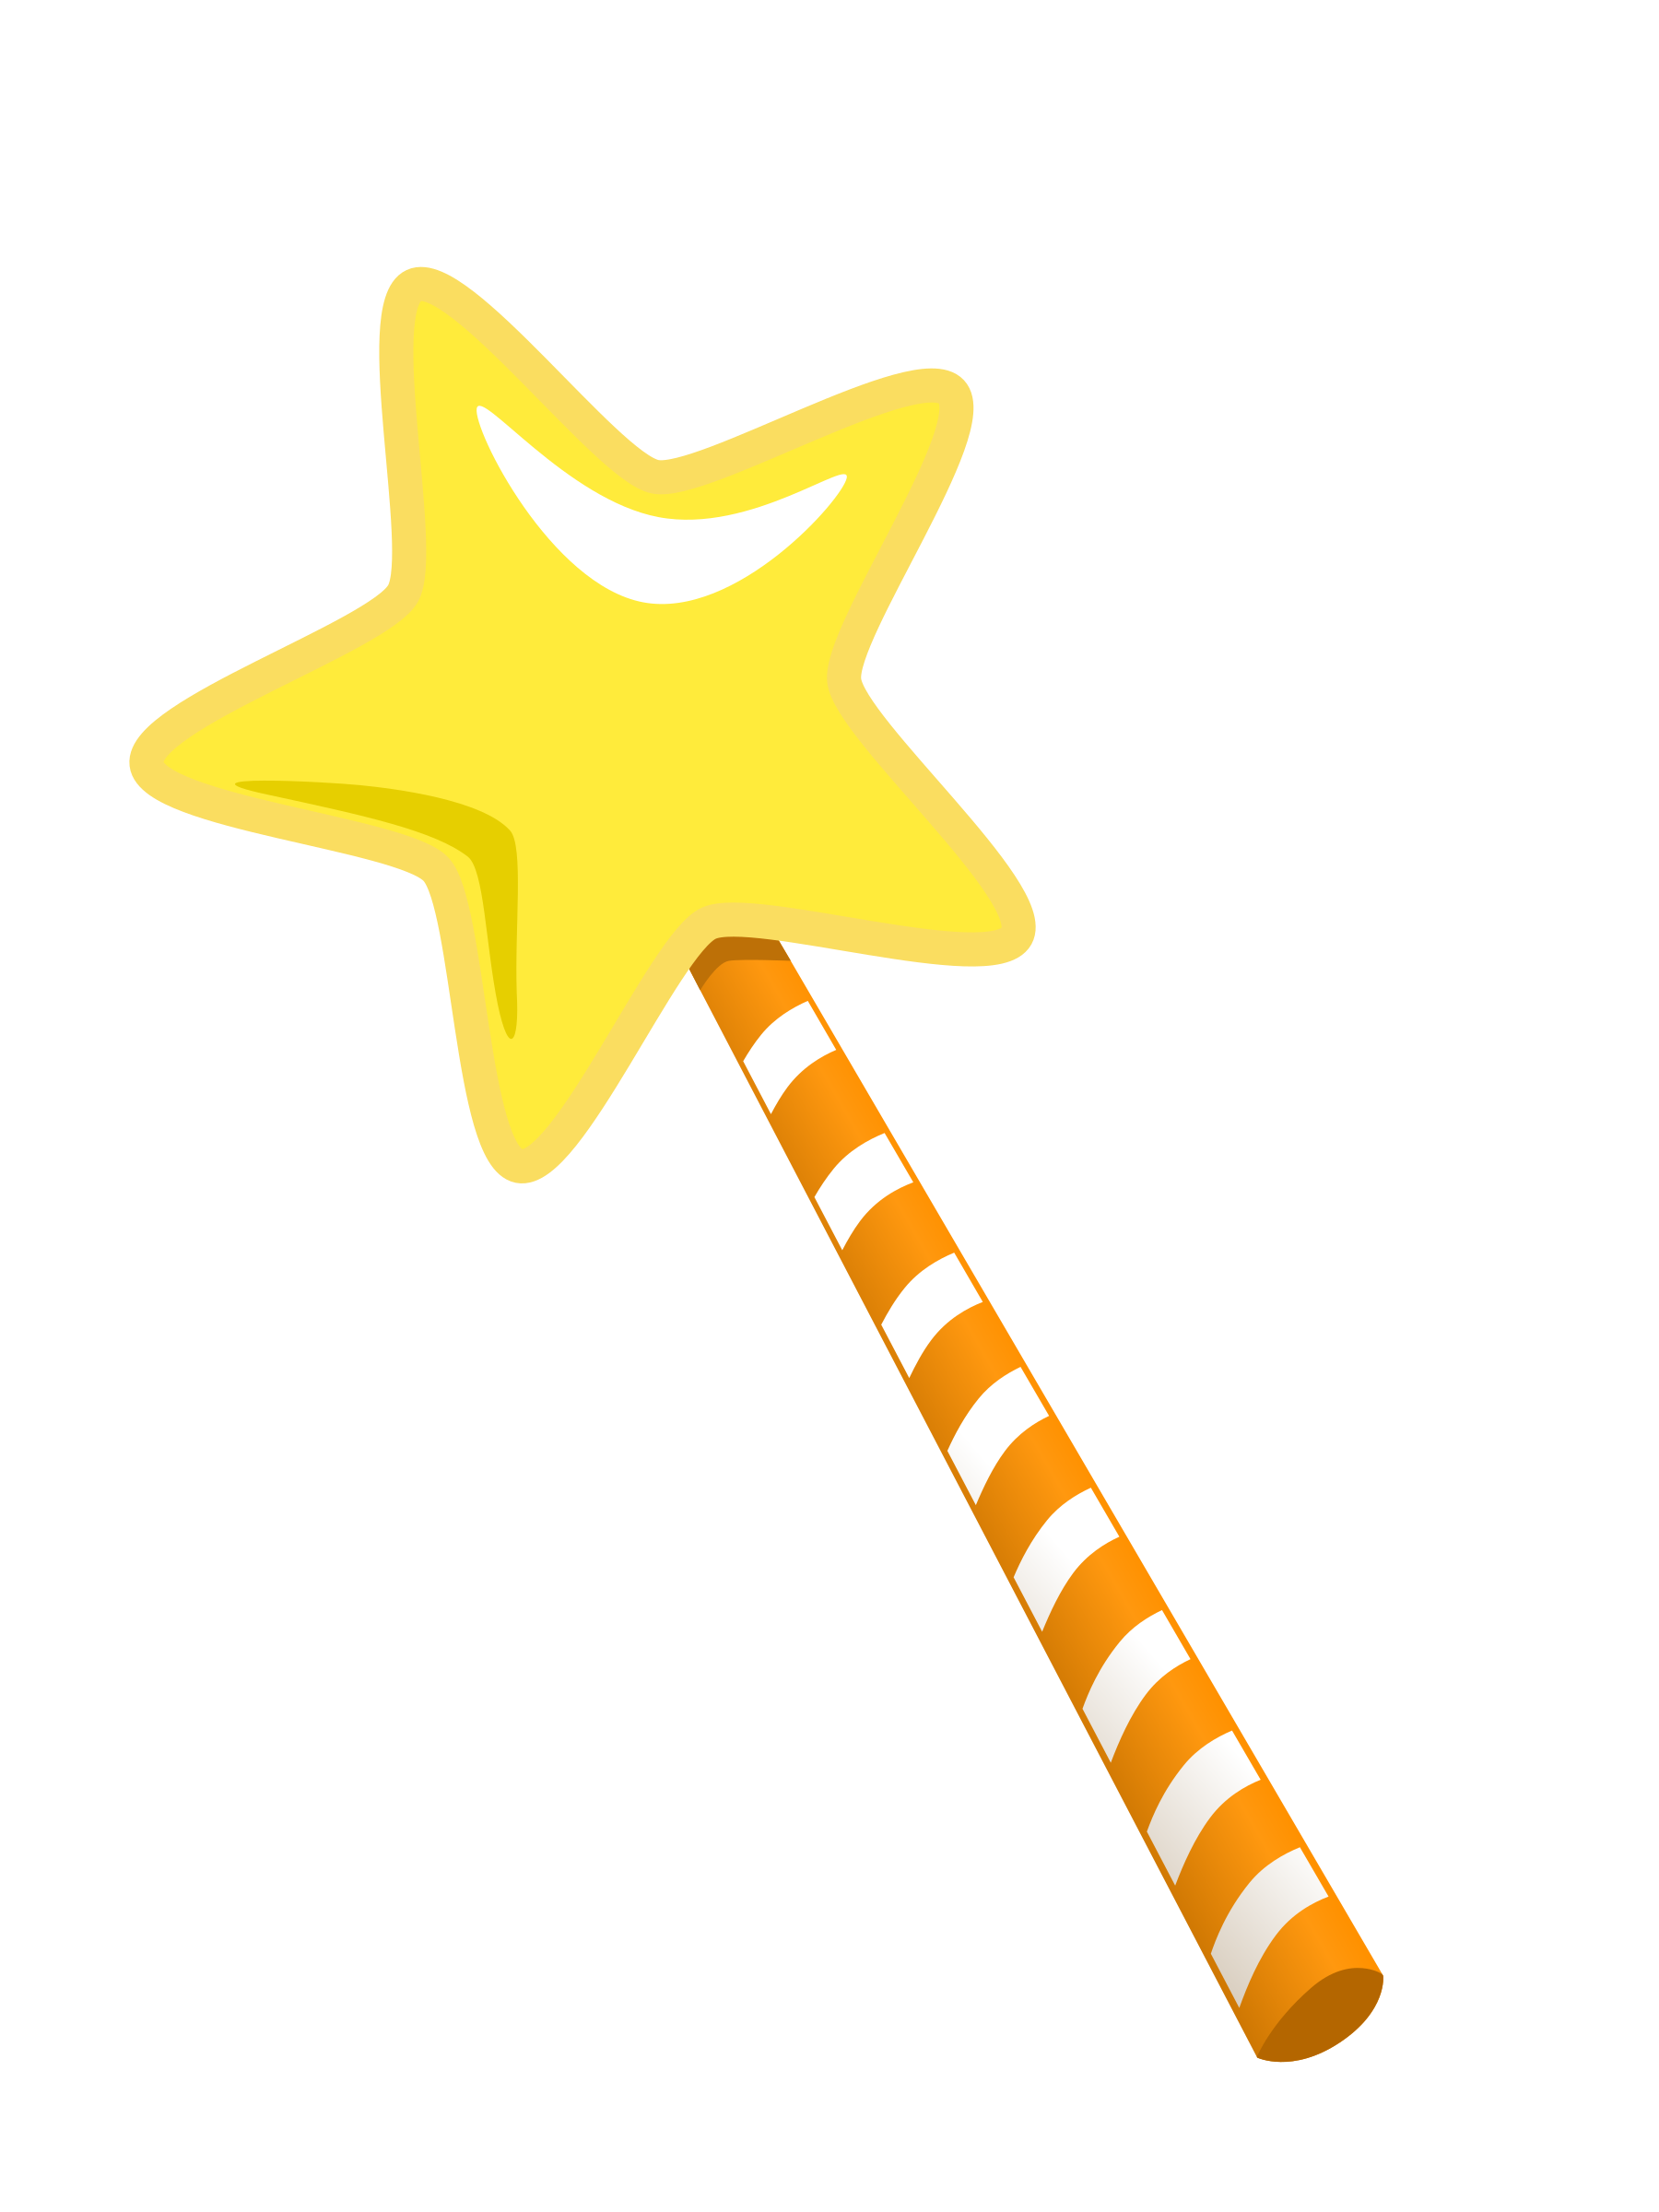 magic wand cartoon style by monsterbraingames